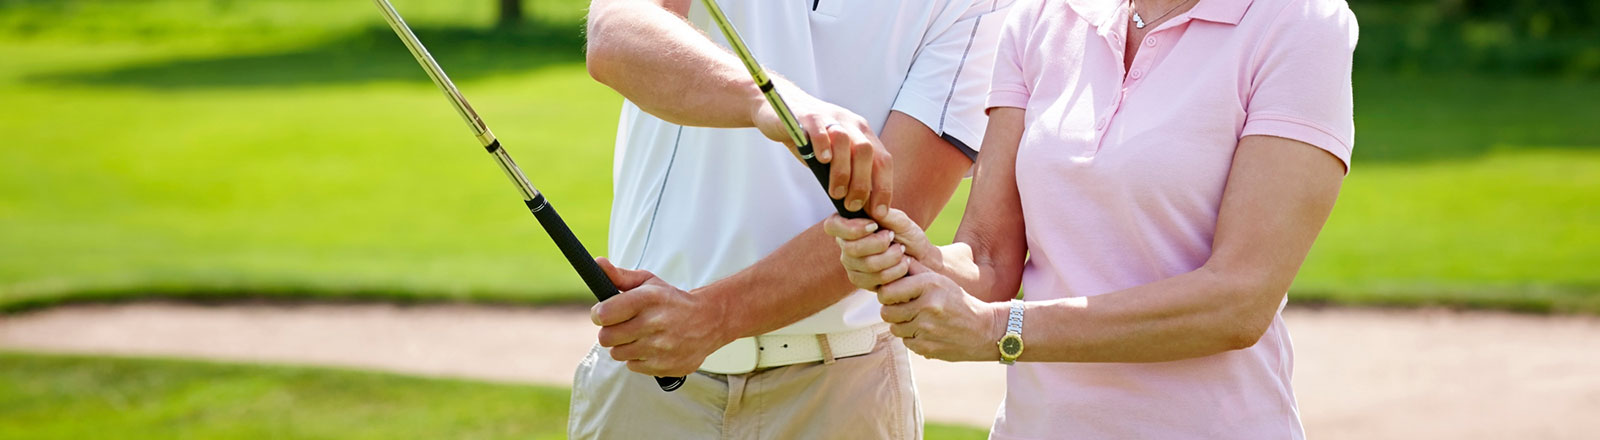 Woman having a golf lesson on grip